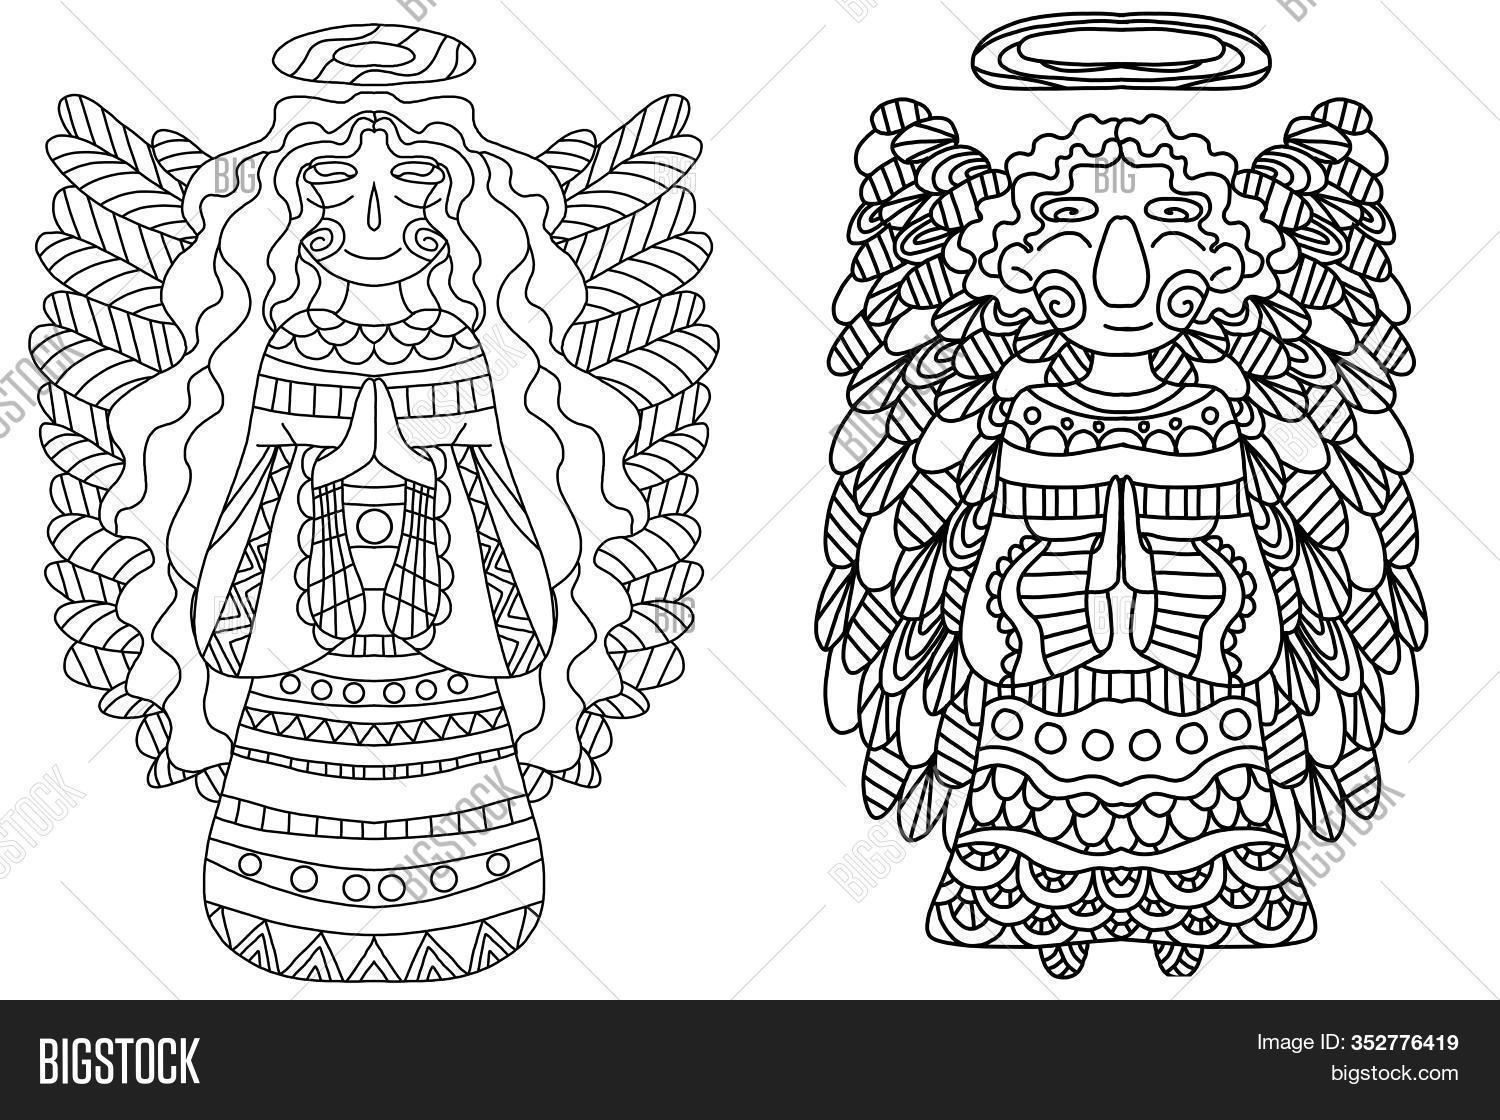 The Heroes of the Bible Coloring Pages on Behance | 1120x1500